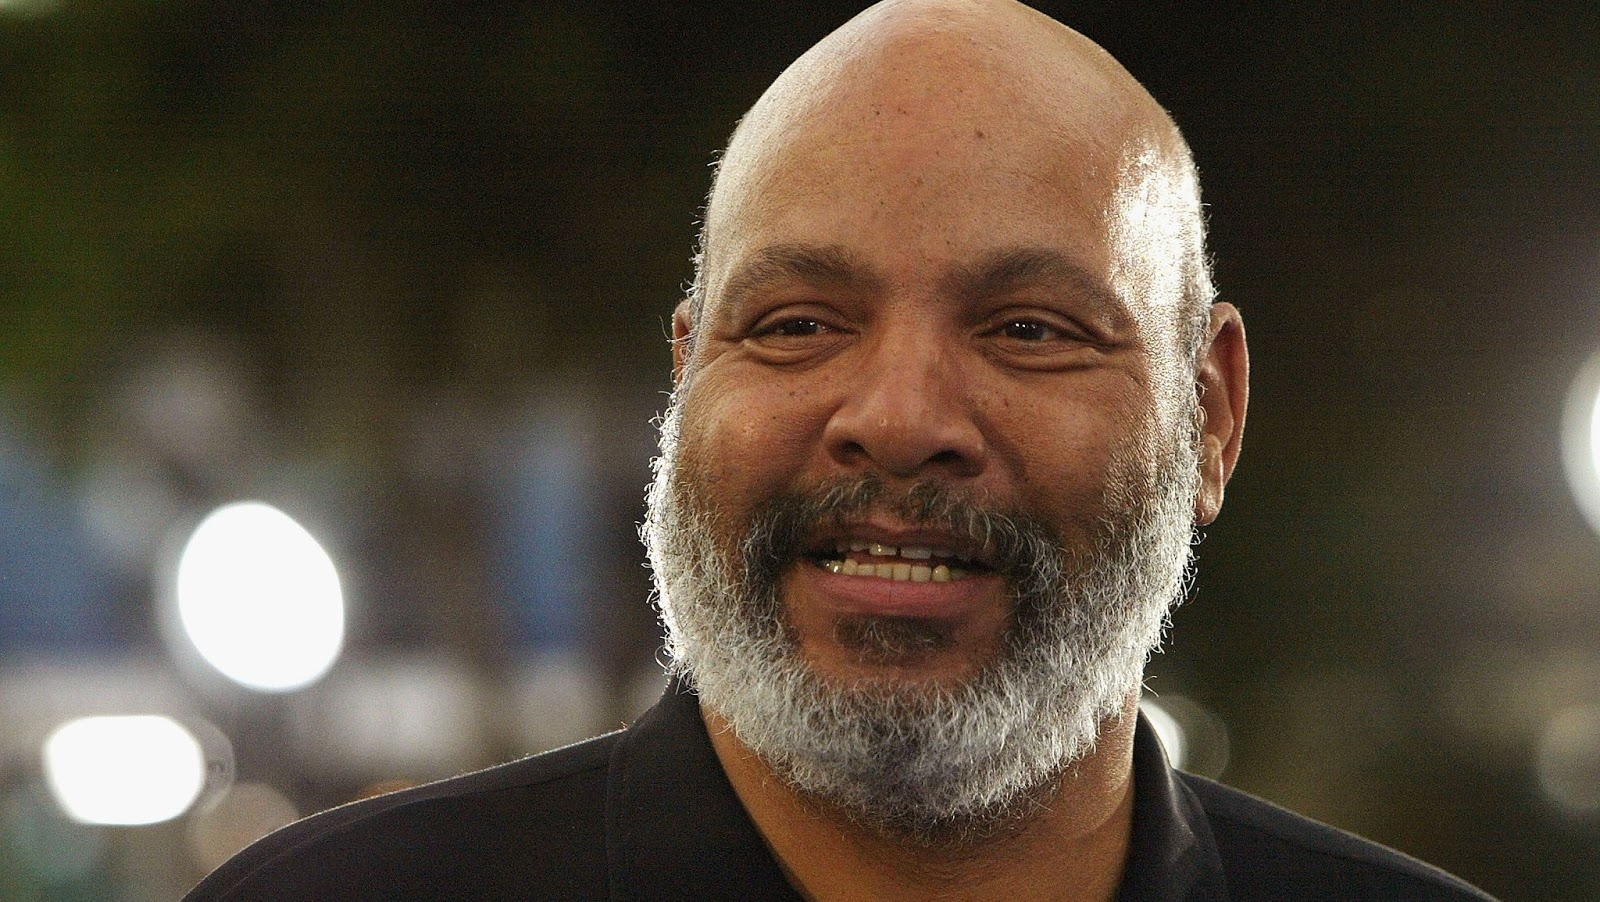 FRESH PRINCE OF BELL AIR STAR James Avery DEAD.